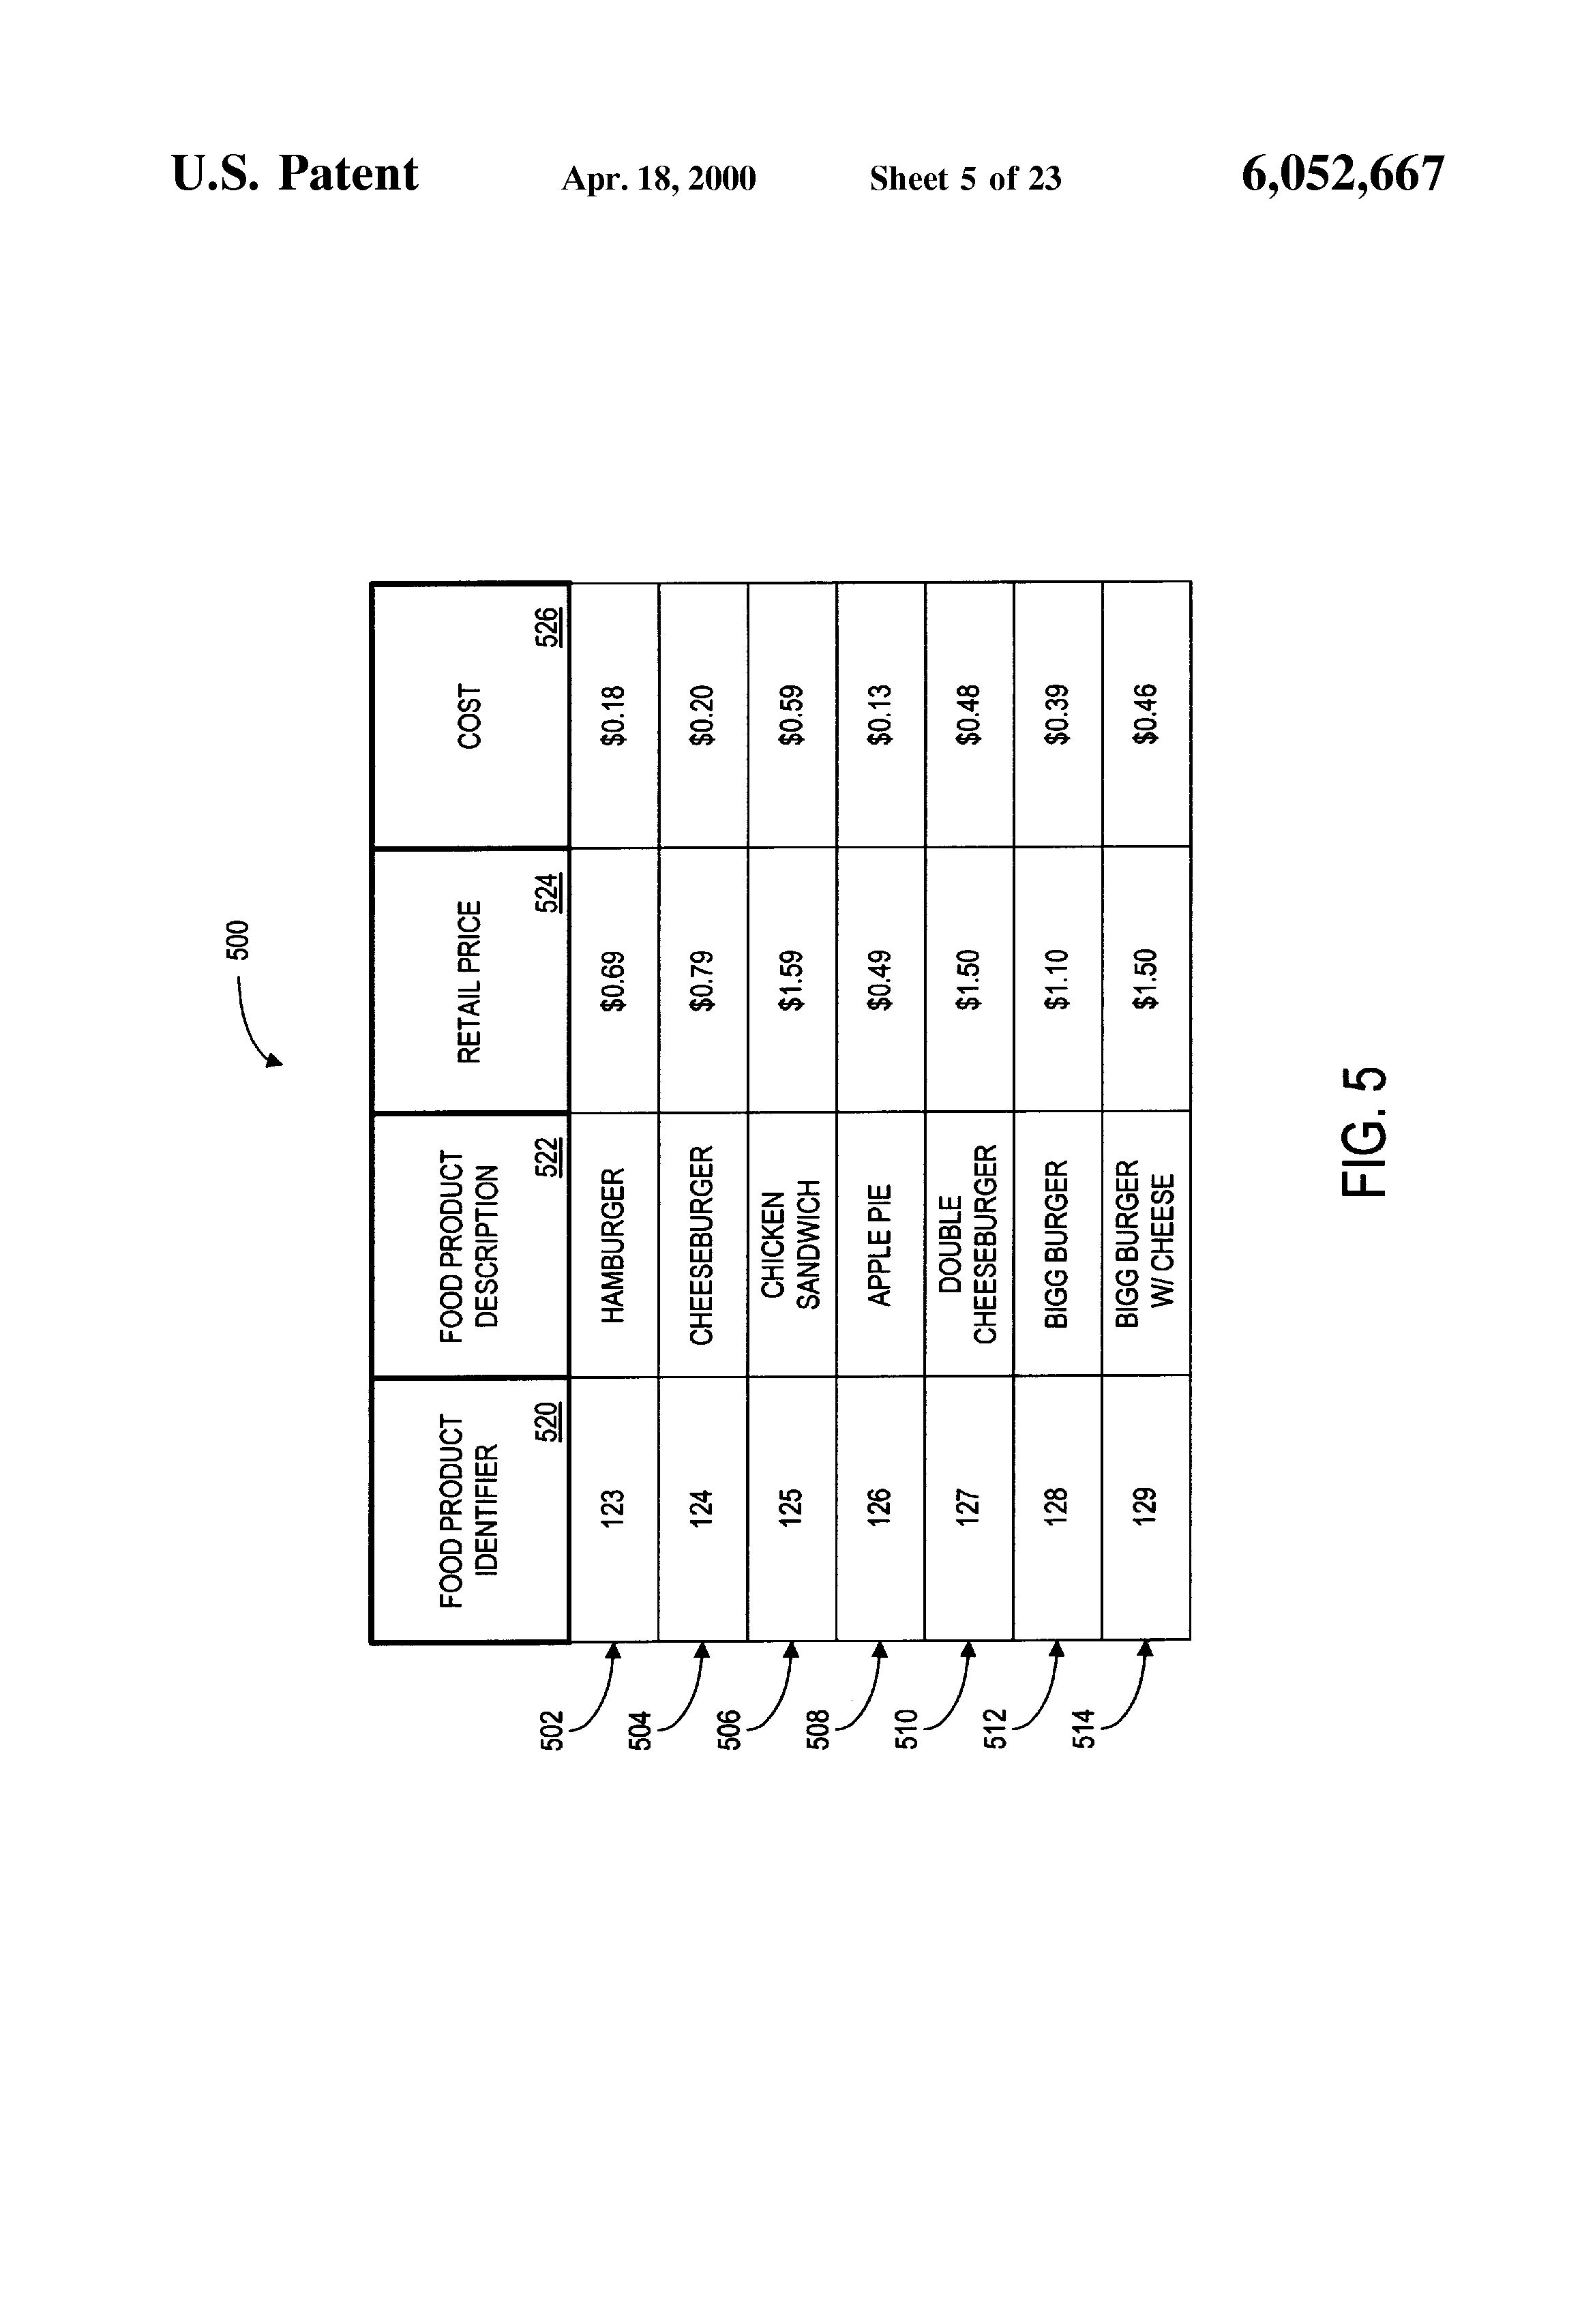 Receiving Food Product Substitute